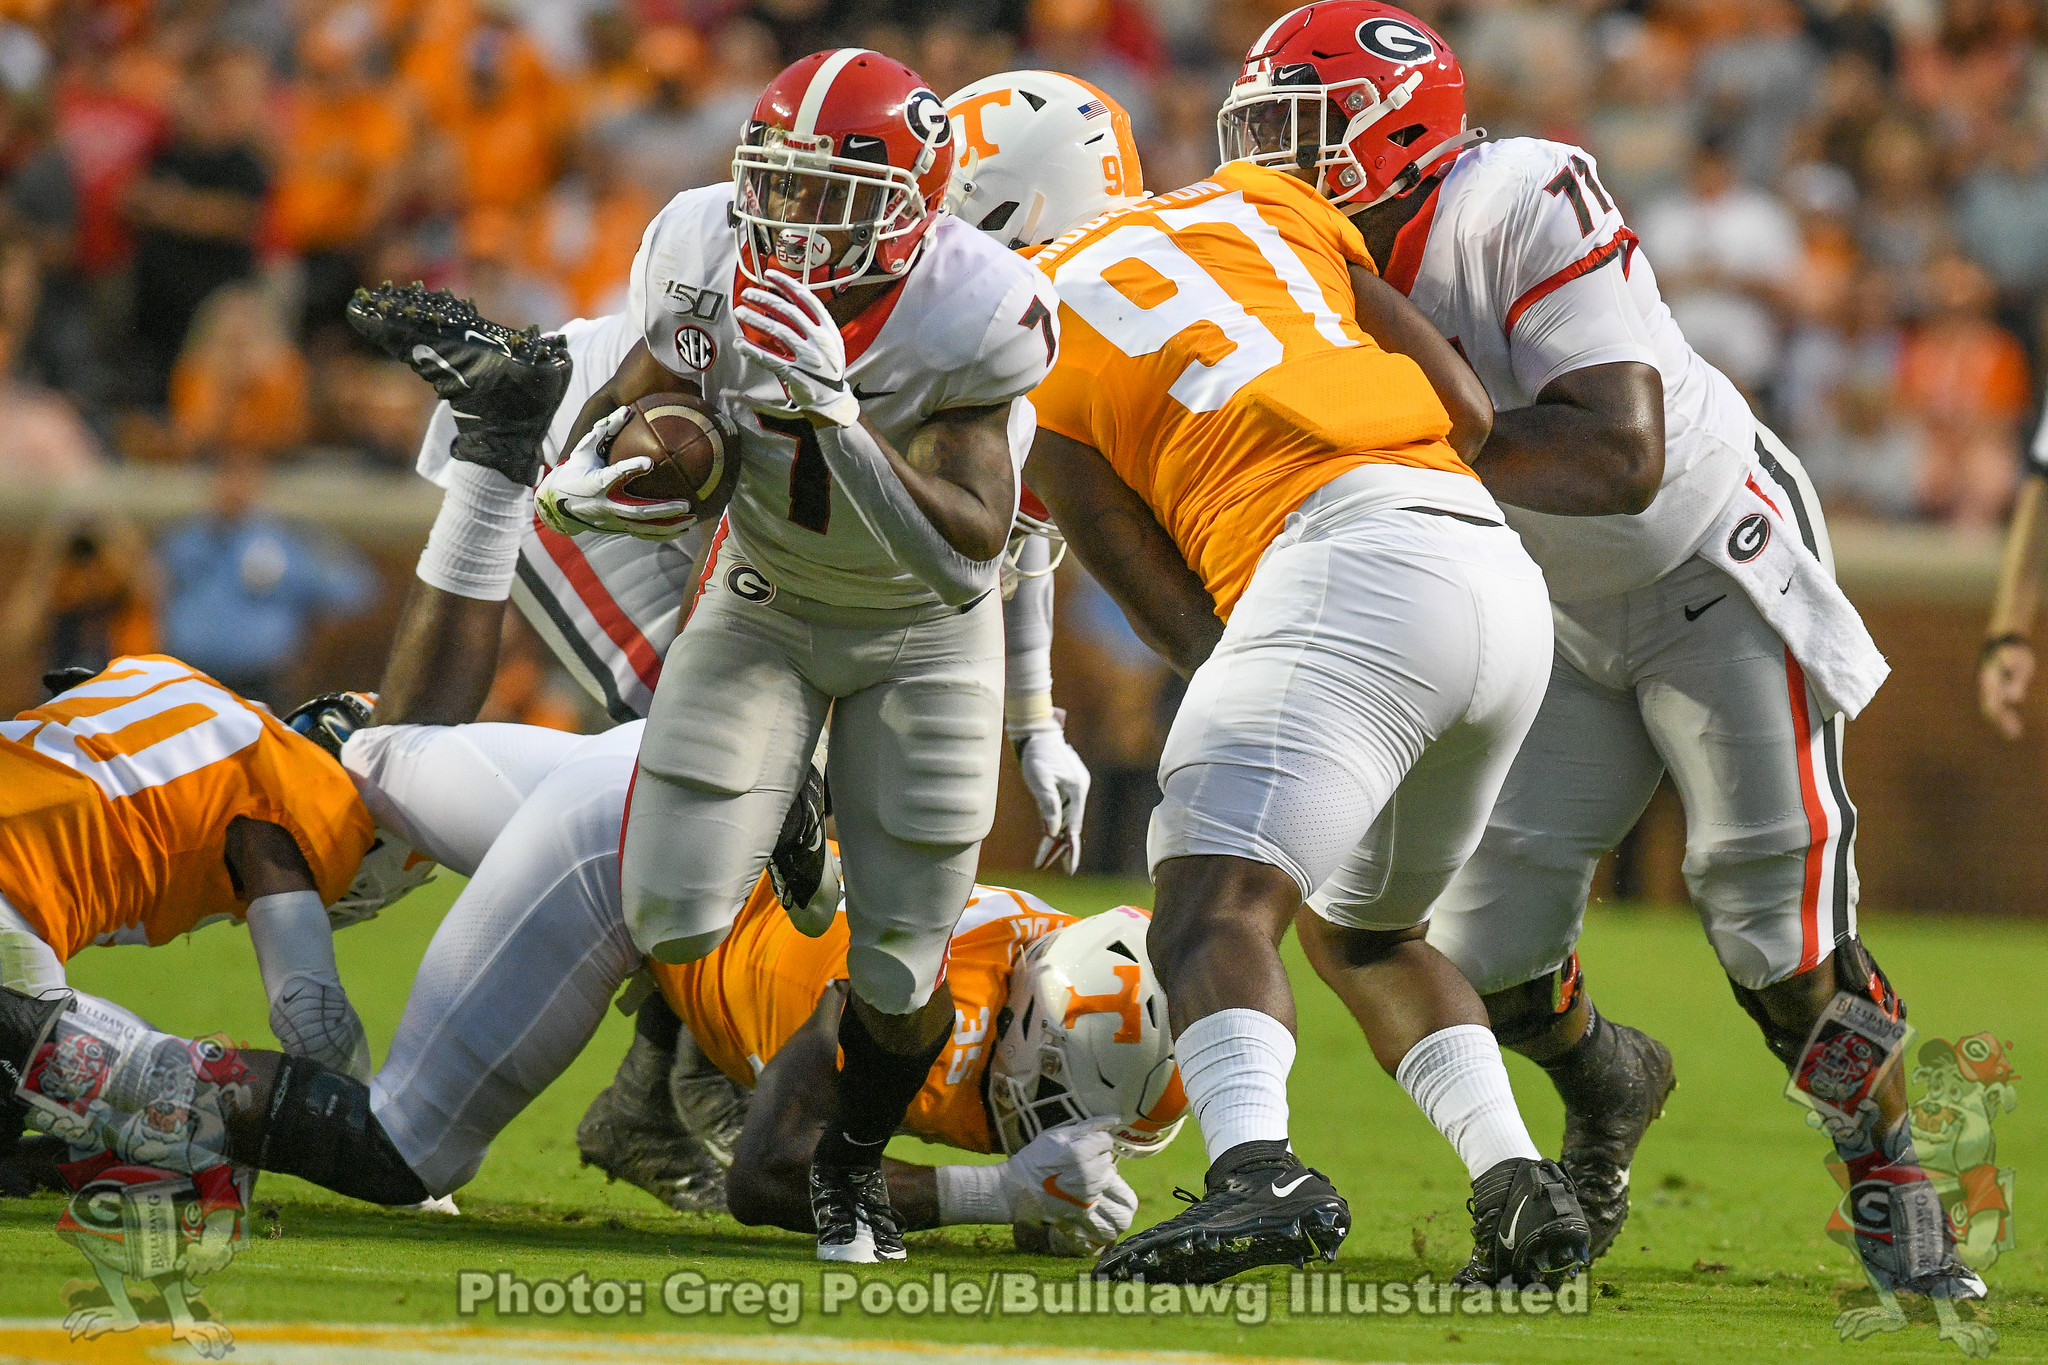 D'Andre Swift (7) breaks a tackle on a run during the first quarter against Tennessee in 2019.